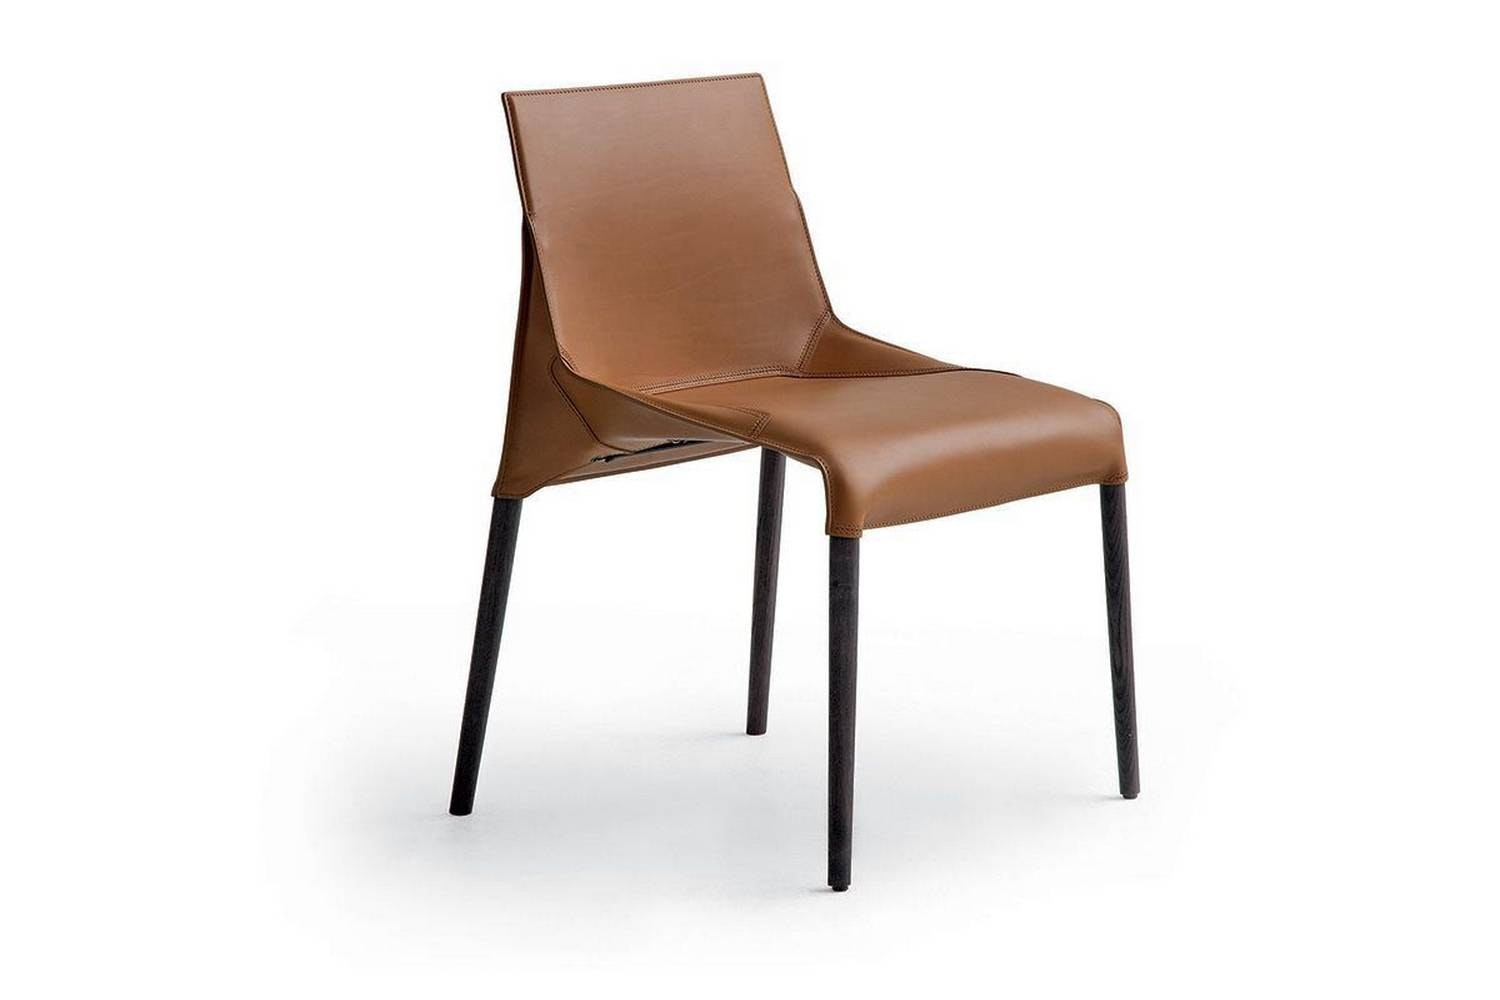 Seattle Chair by J. M. Massaud for Poliform